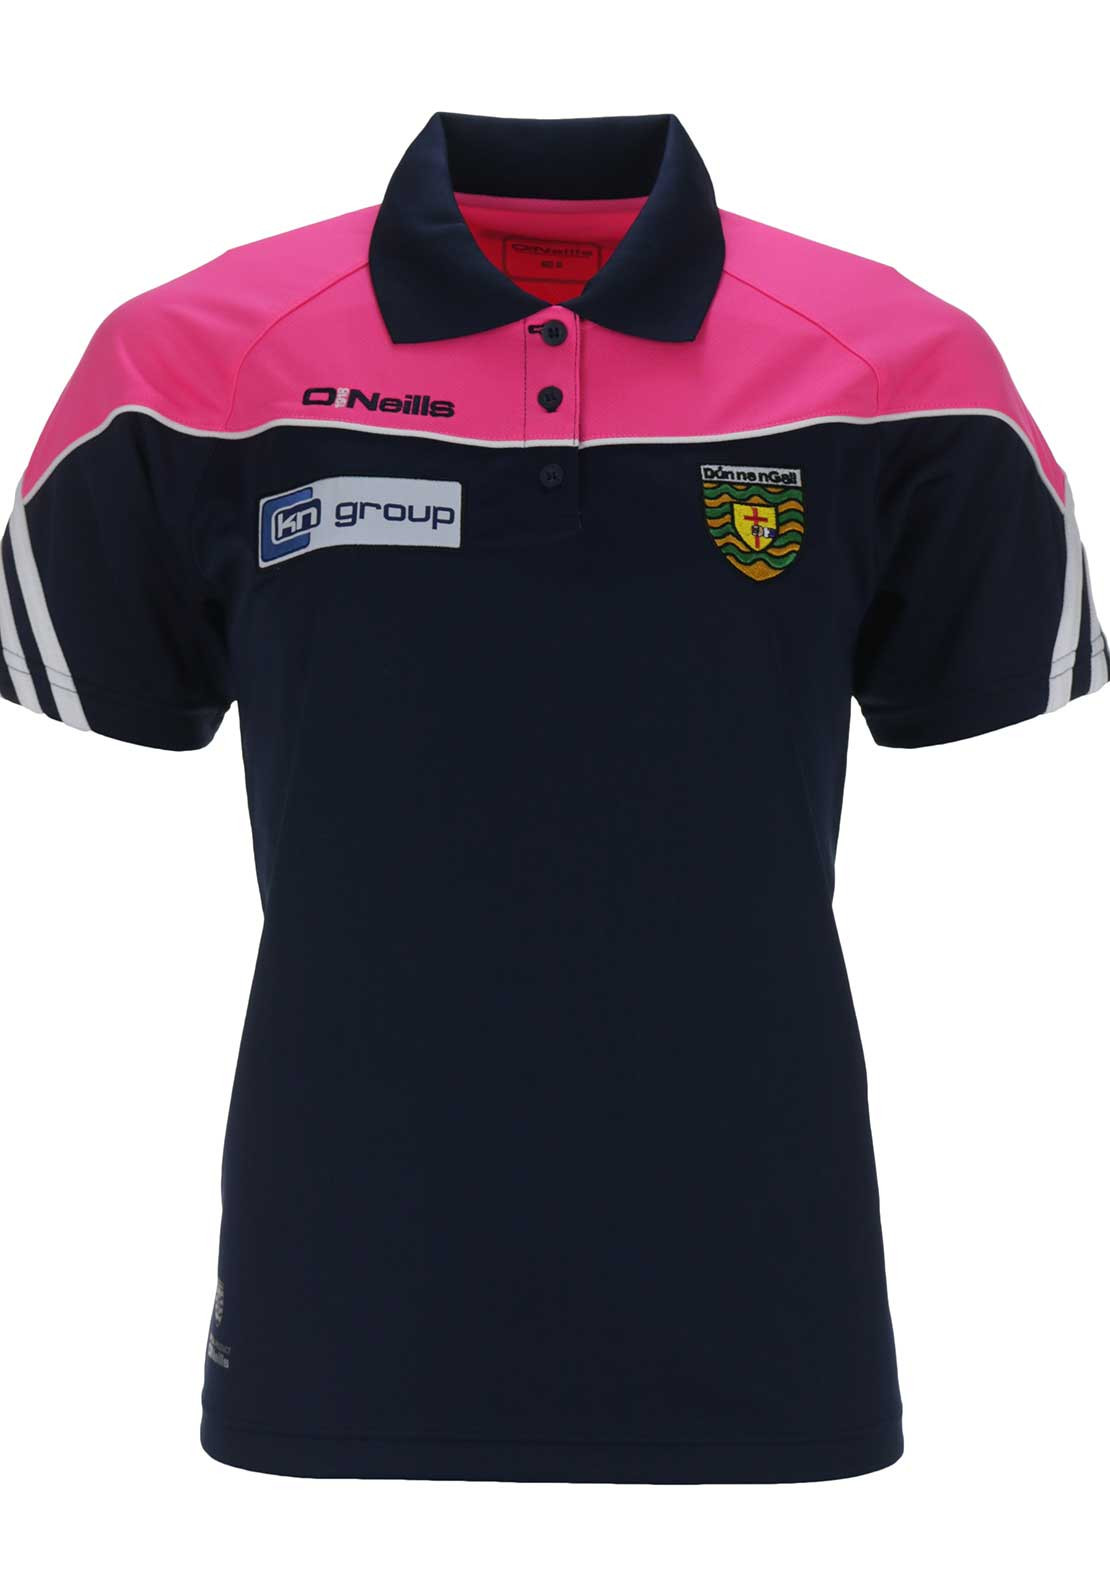 O'Neills Donegal GAA Womens Ormond Polo Shirt, Navy and Pink